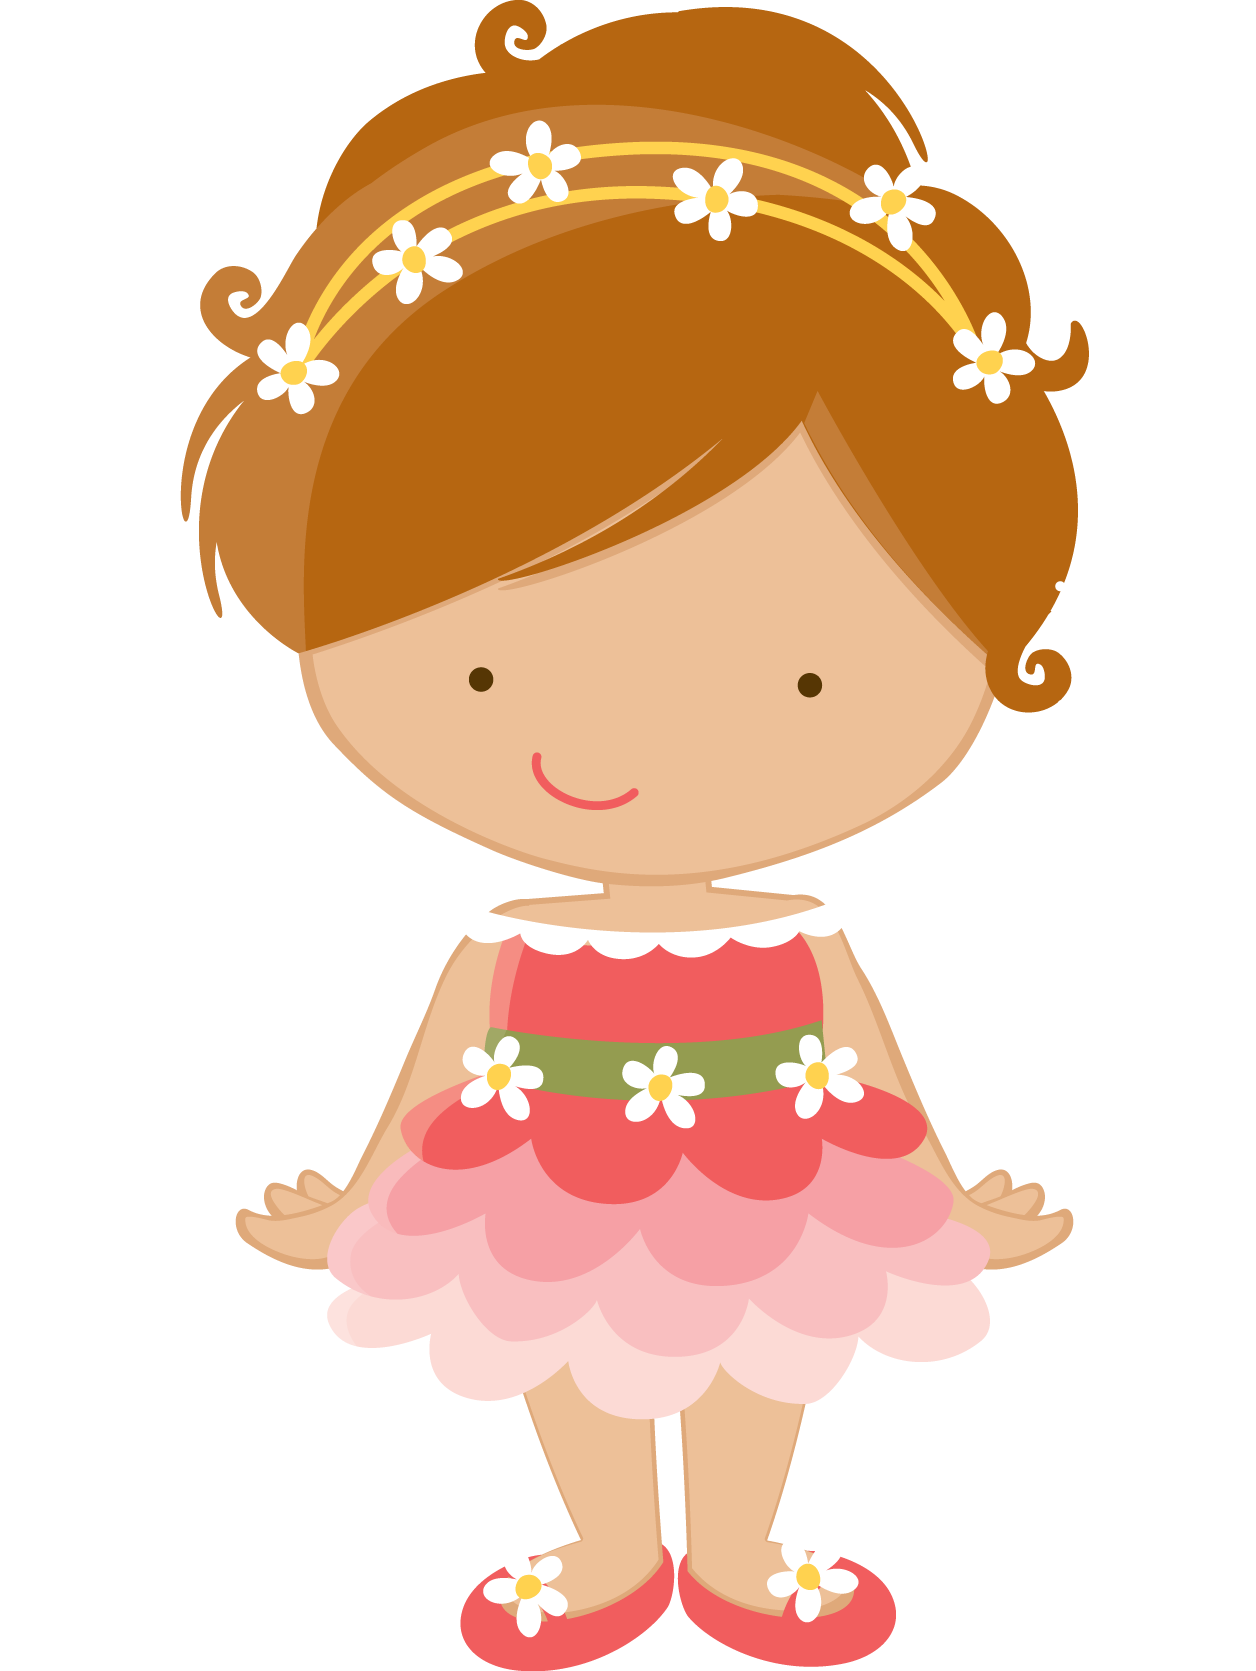 Zwd Mushroom 03 Zwd Fairy 03 Png Minus Bonecas Clipart Fofo